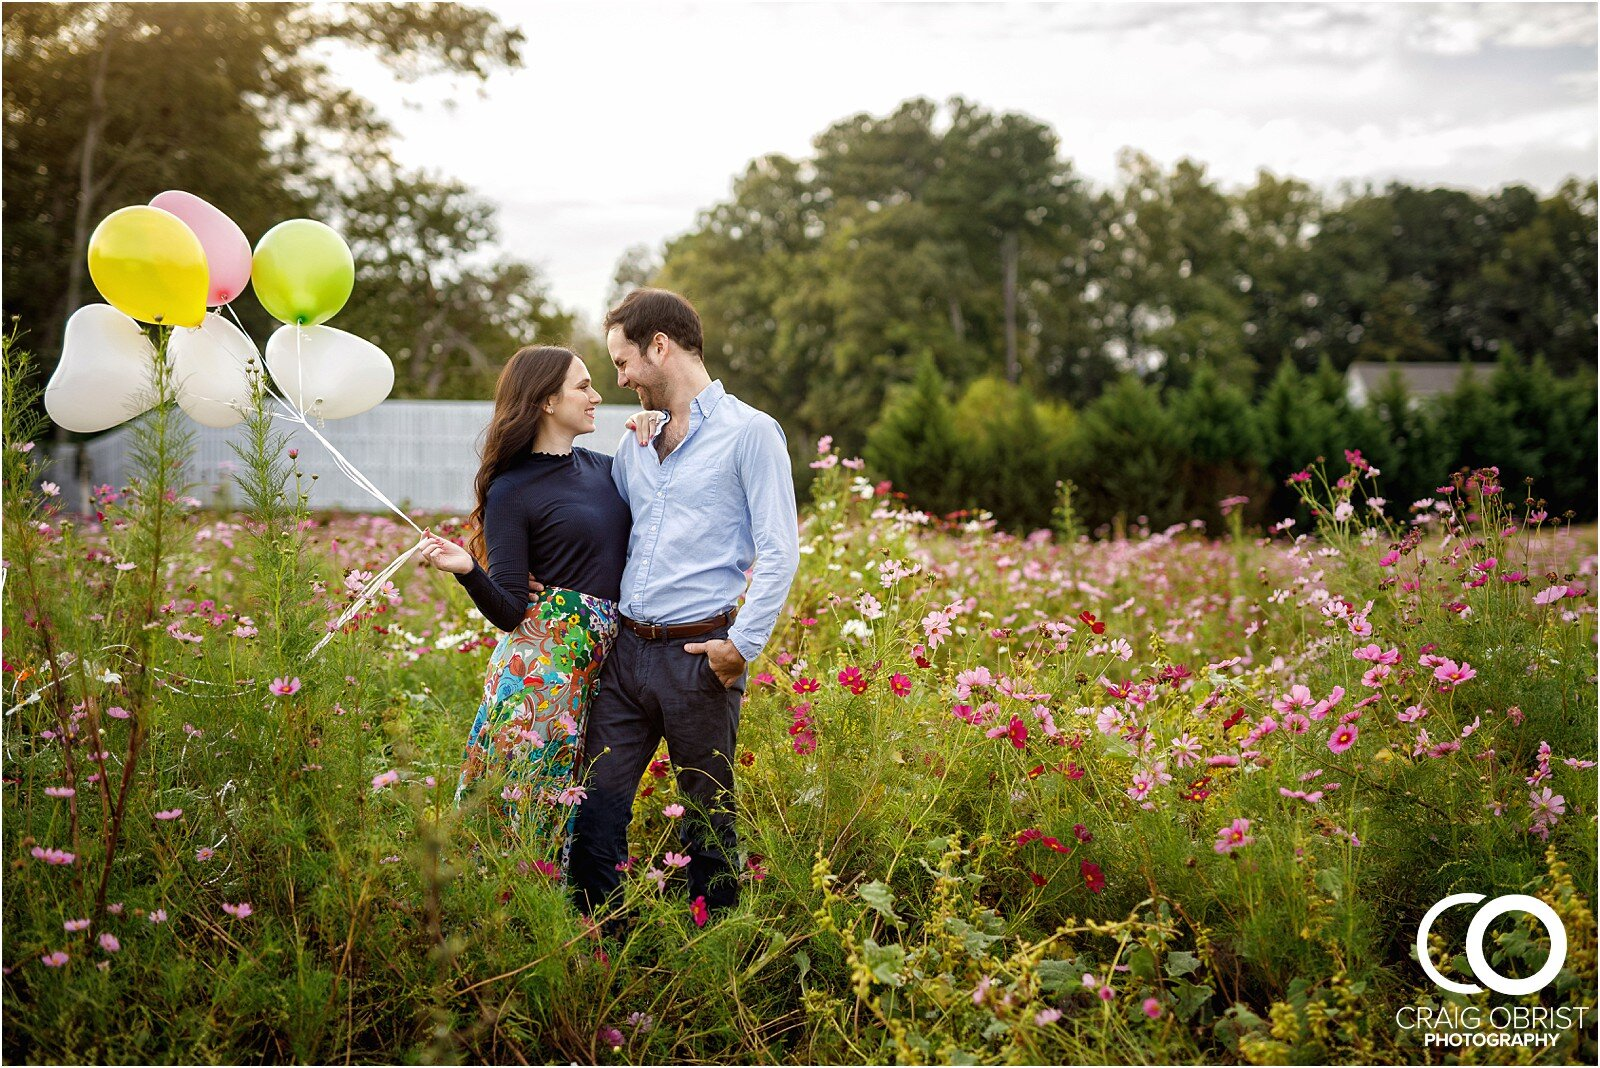 The Barn at Little River Little River Farms Engagement Wedding Portraits Fairy Tale_0019.jpg